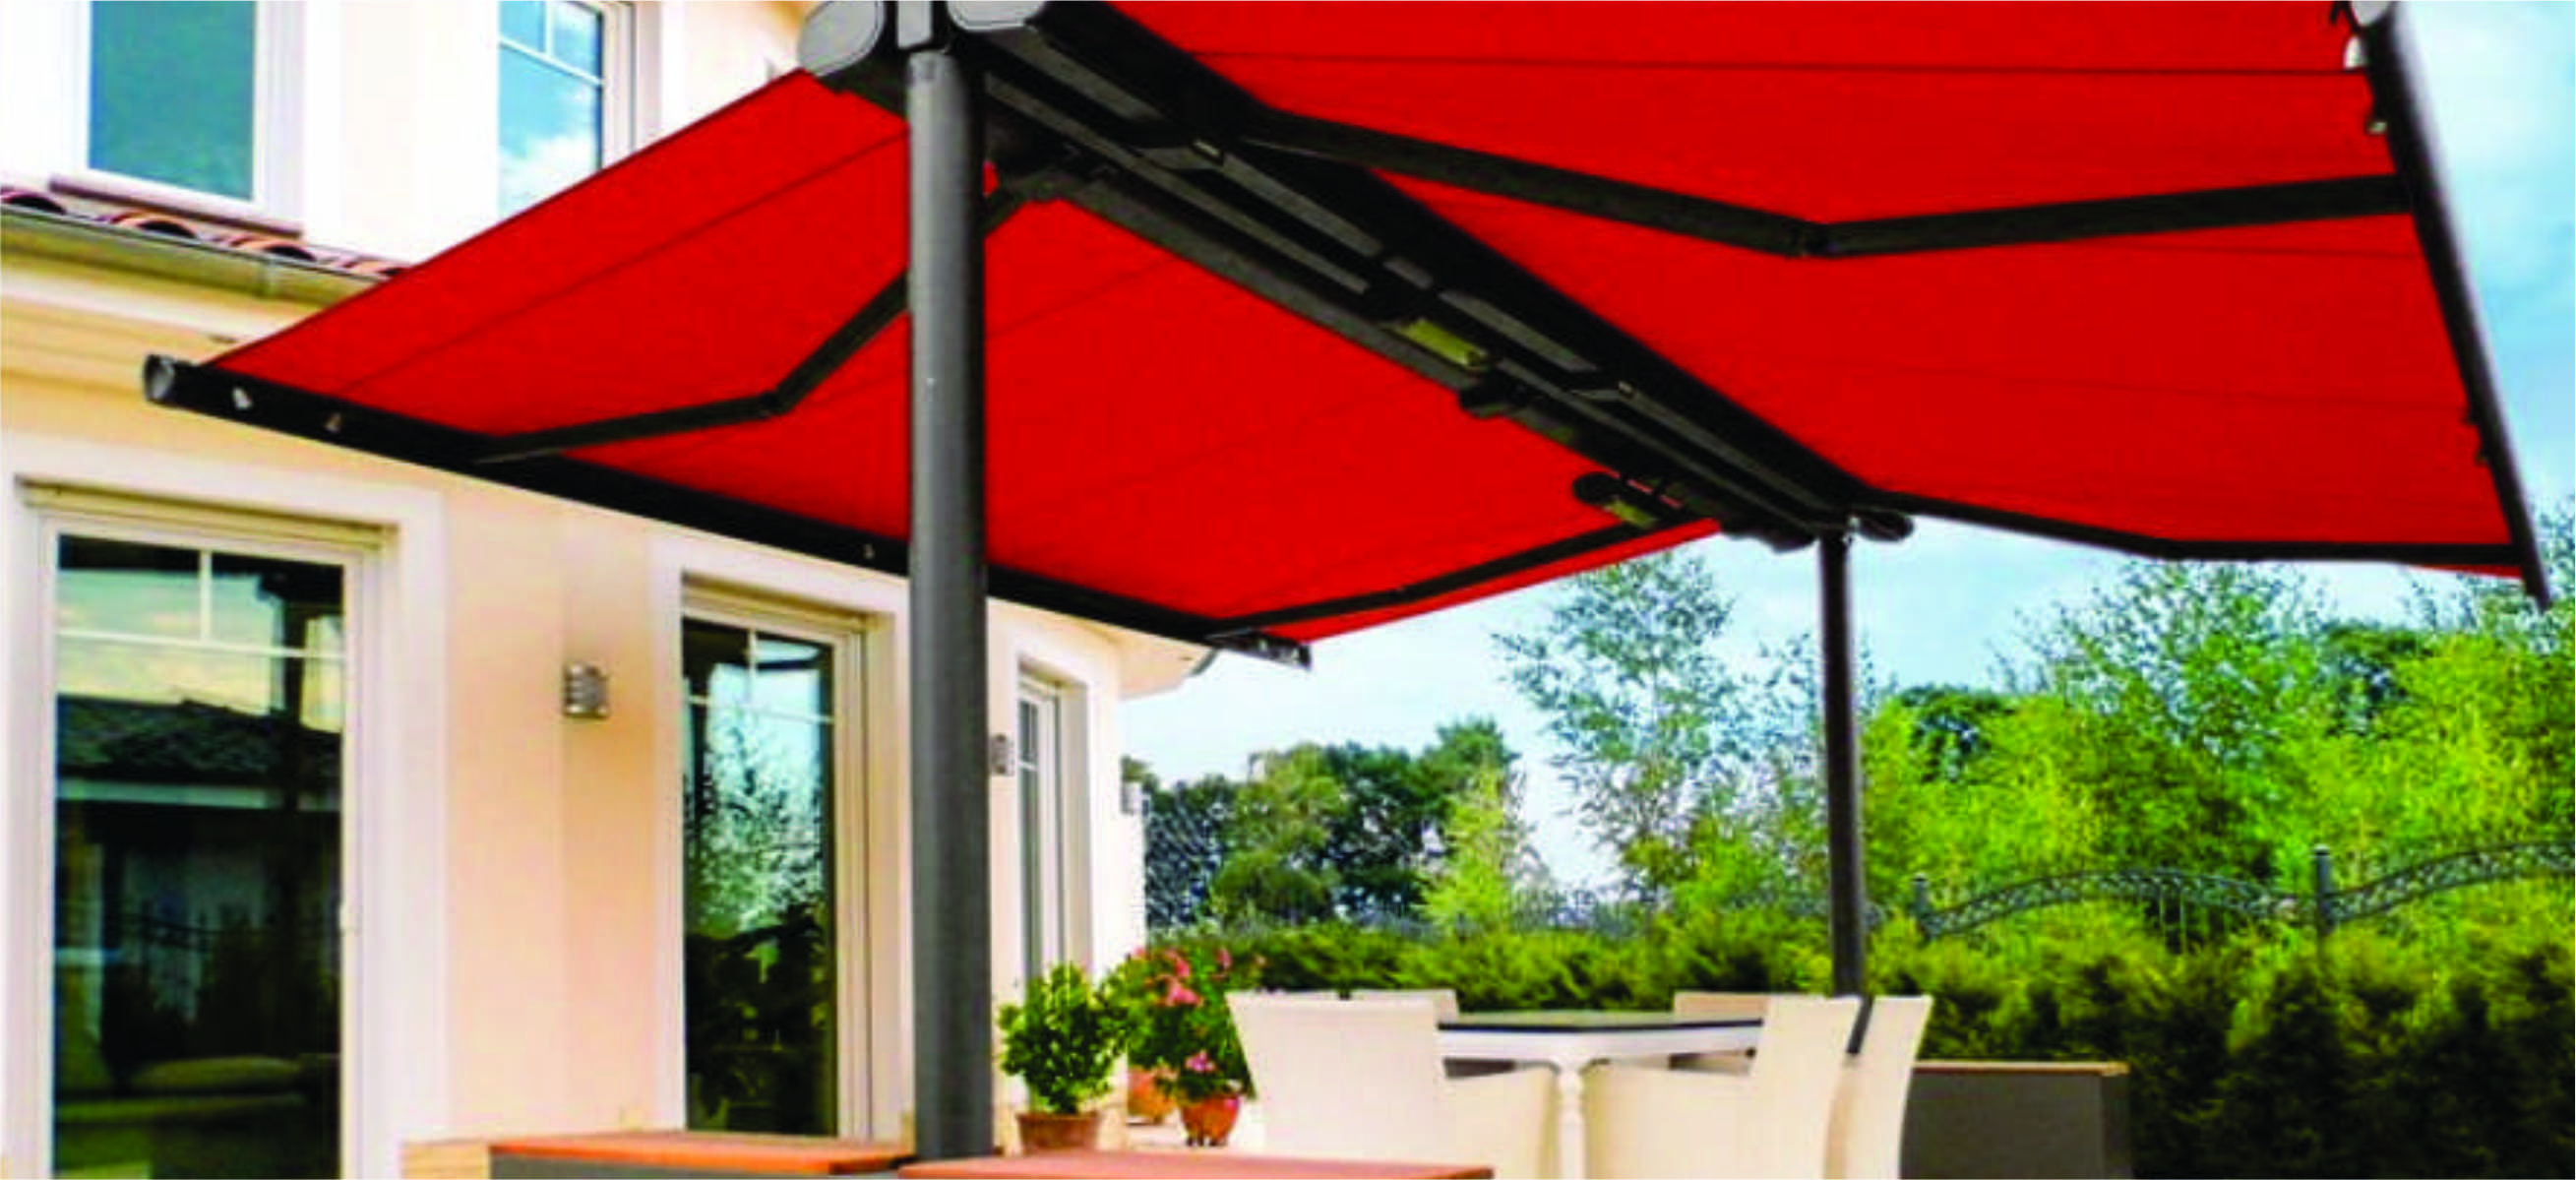 outdoor standard blinds shade solutions awning brisbane creative awnings side view roller sails